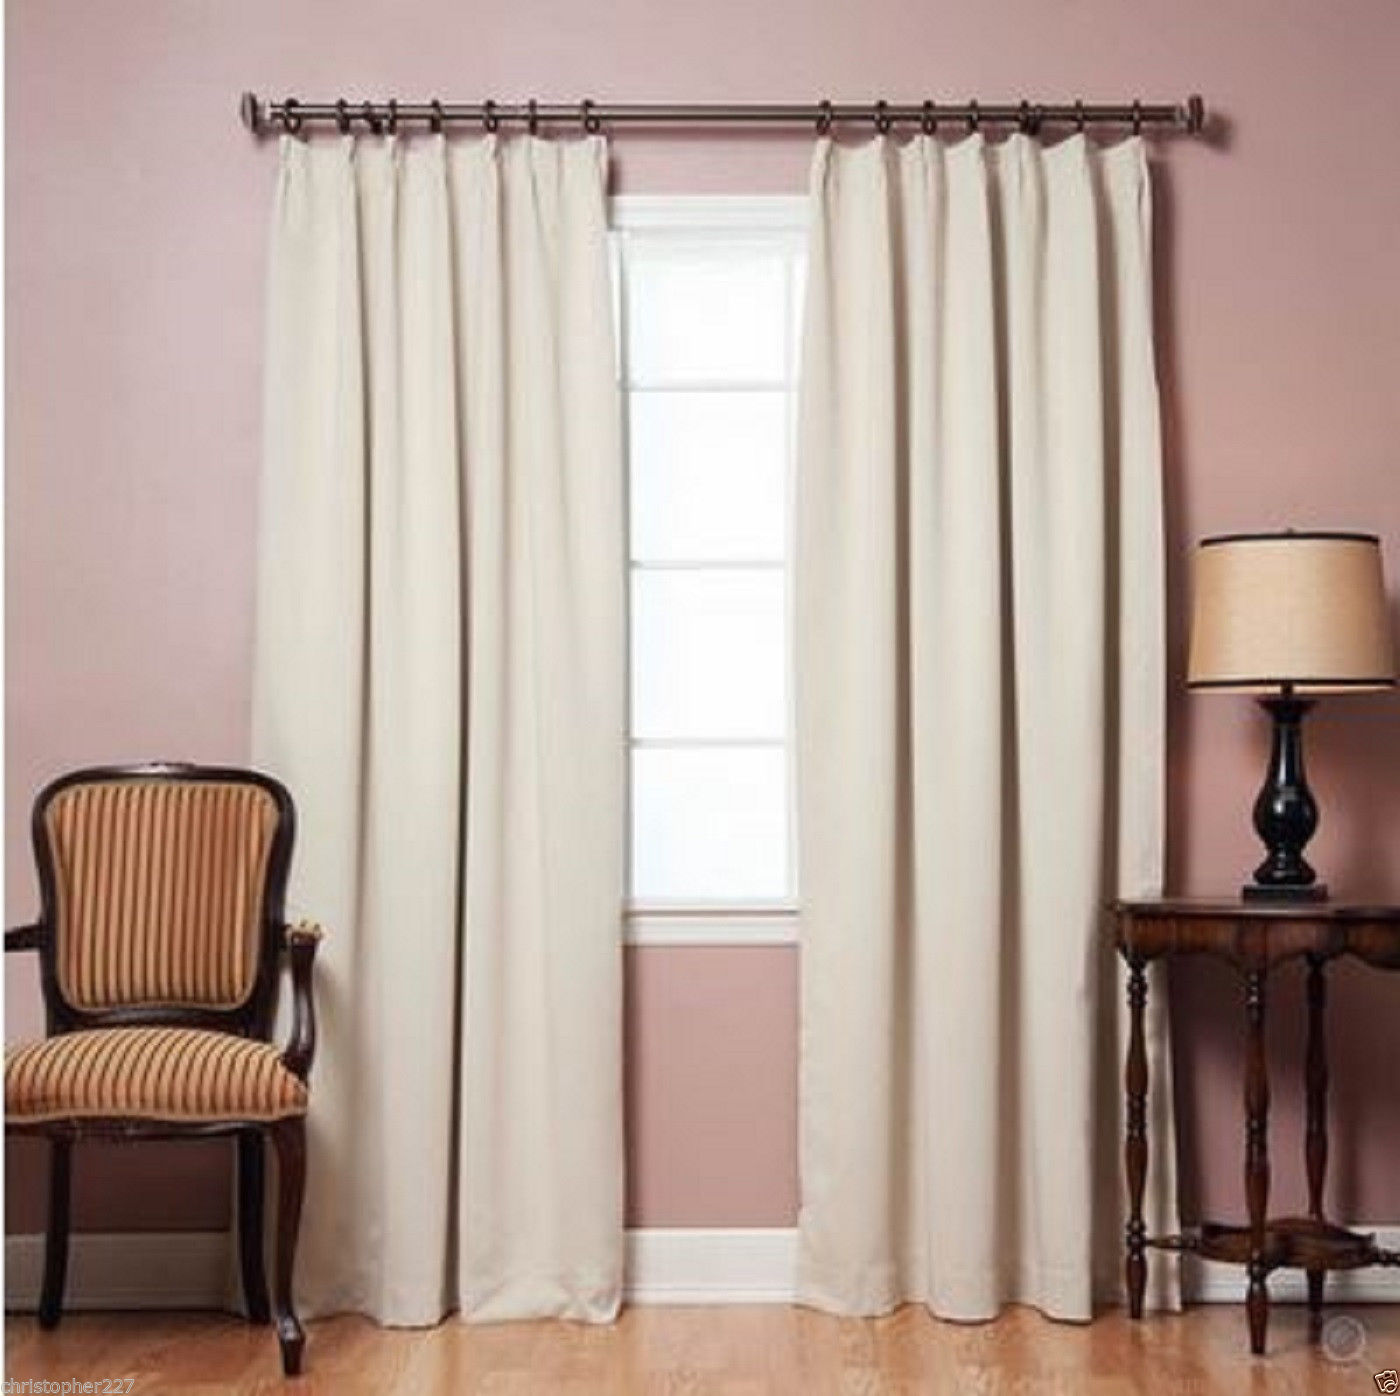 Home Blackout Windows Curtains Insulated Treatments Patio Door Livingroom Decor Curtains